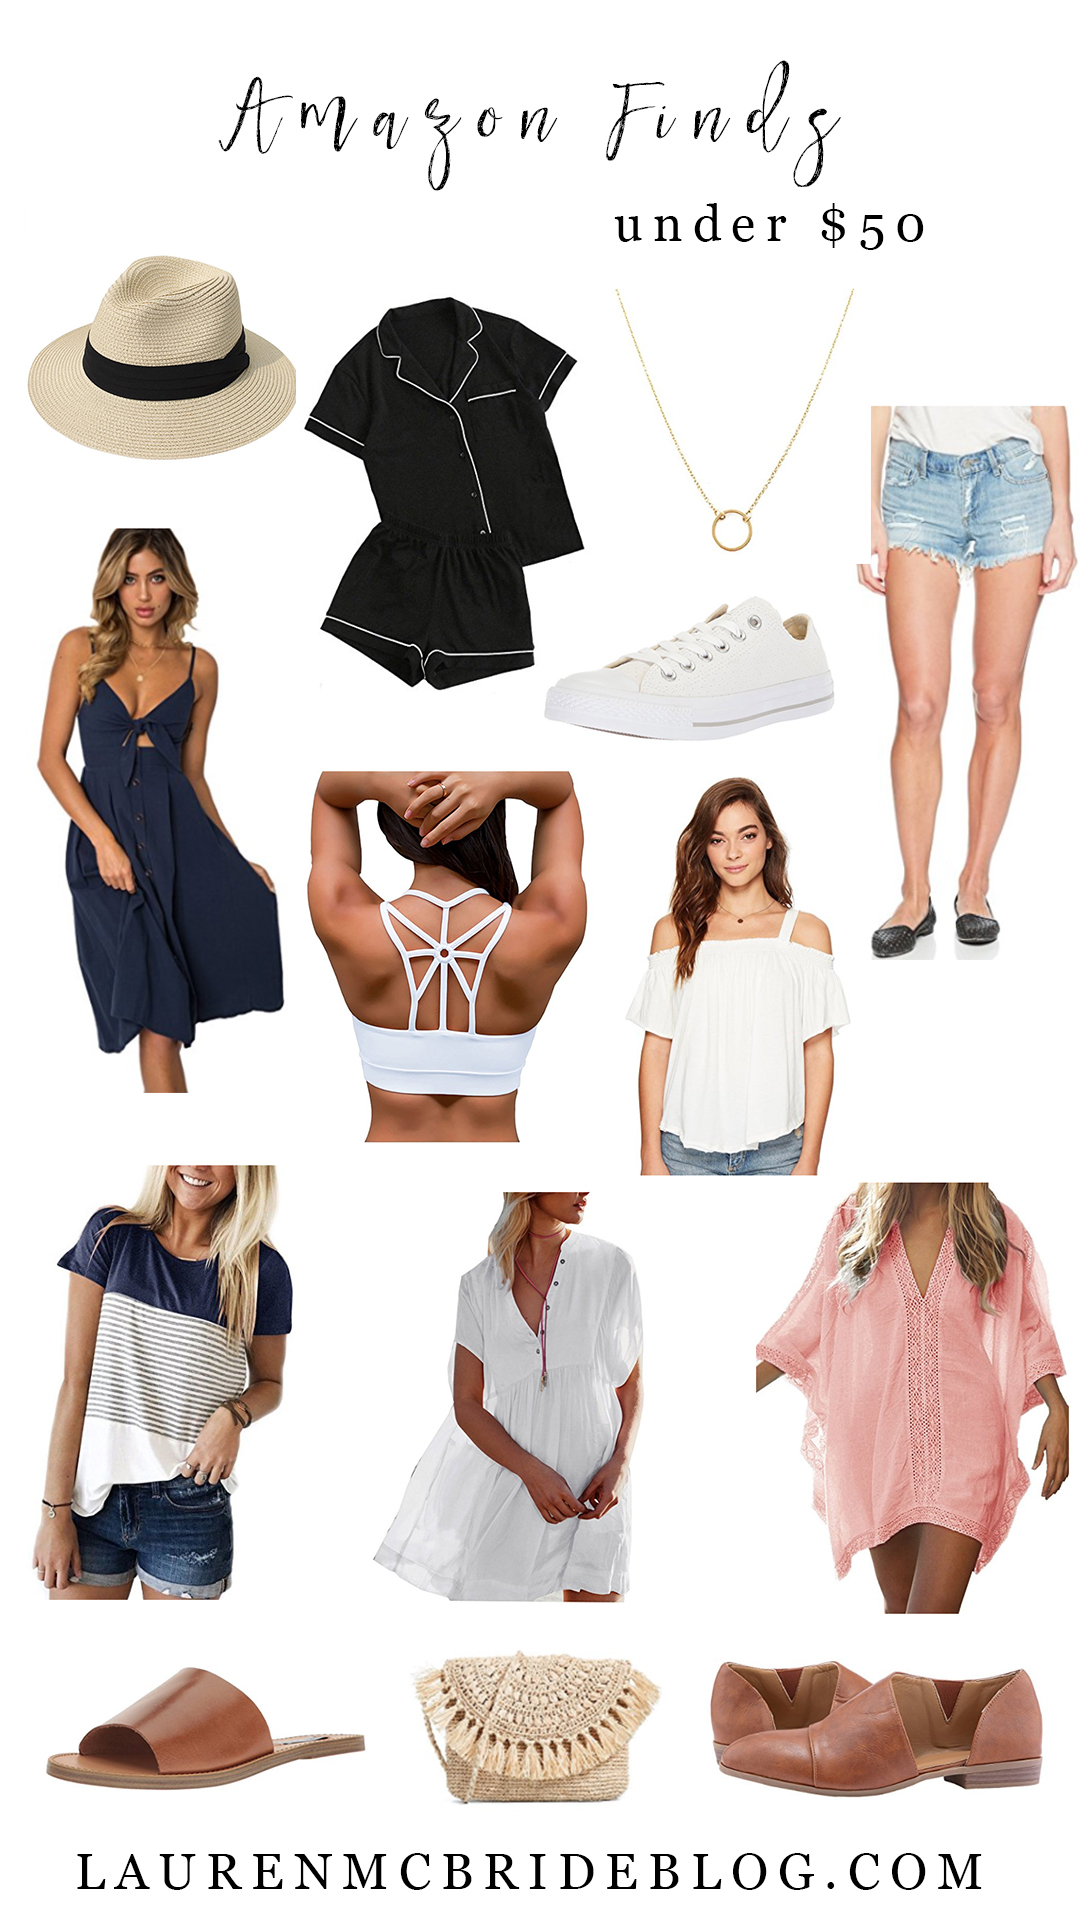 Life and style blogger Lauren McBride shares Amazon Finds Under $50 for the month of June.